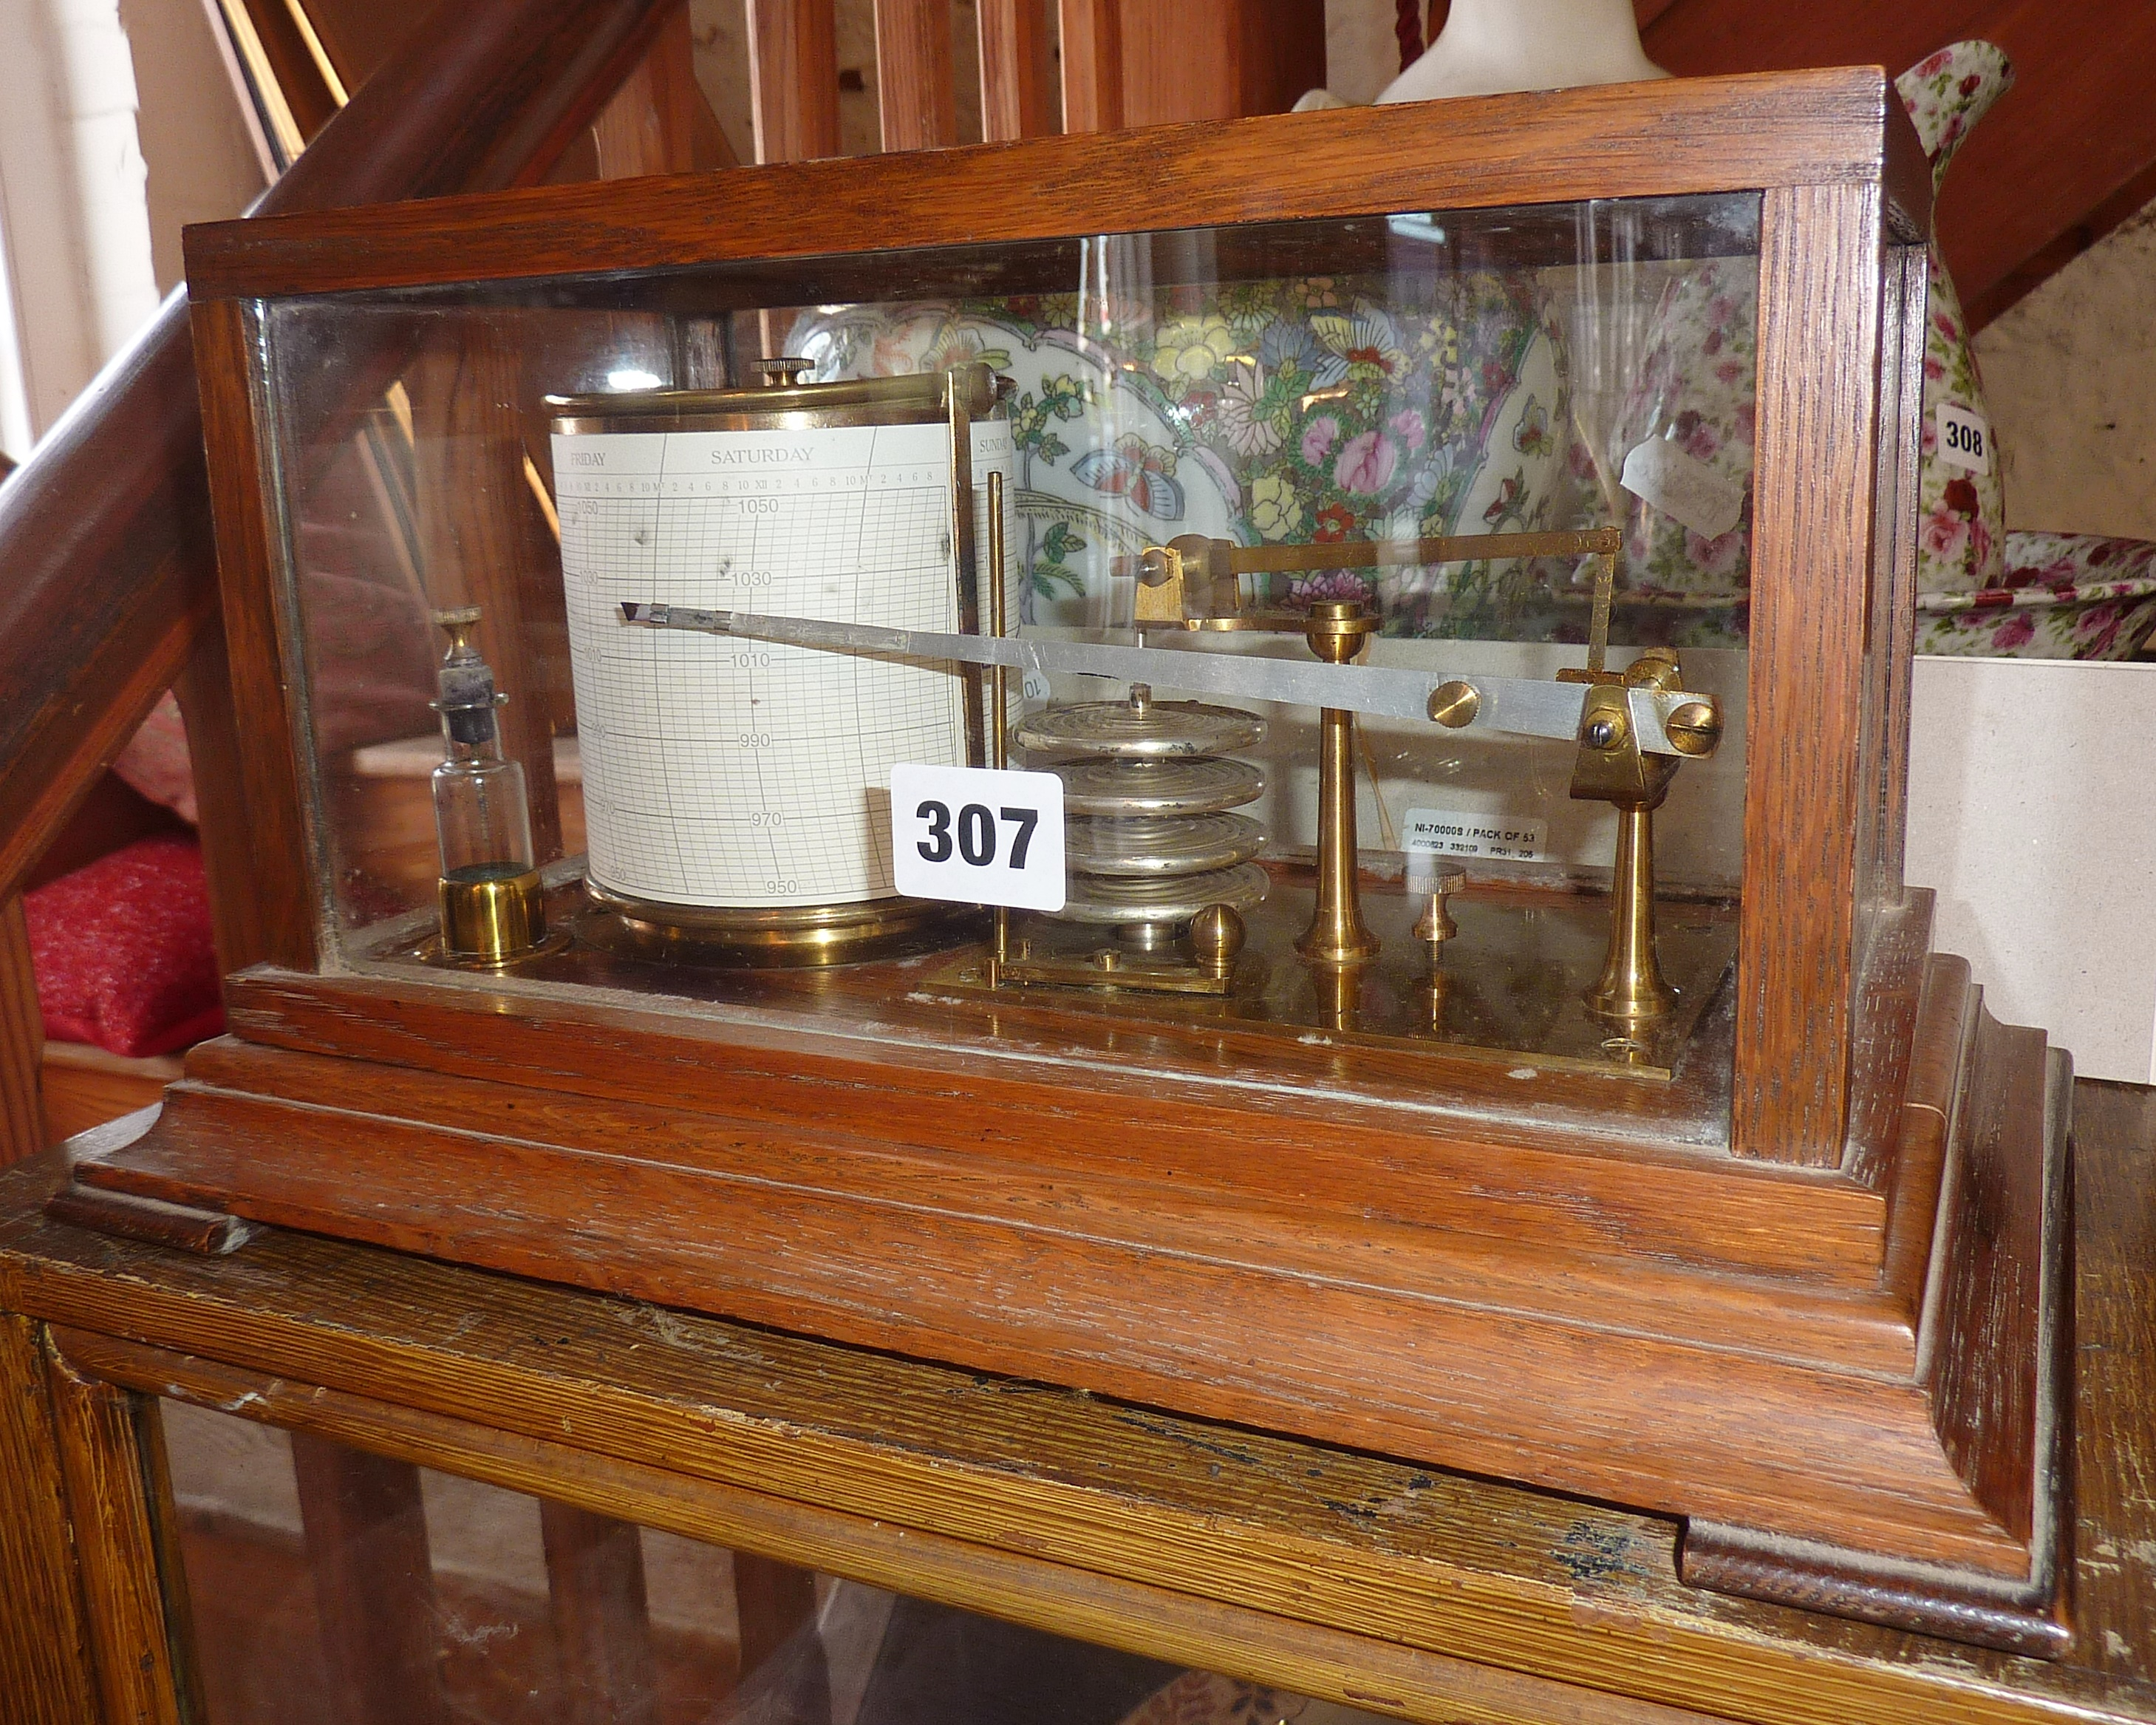 Lot 307 - Pillischer of London Barograph, with charts and inks, in oak framed glass case